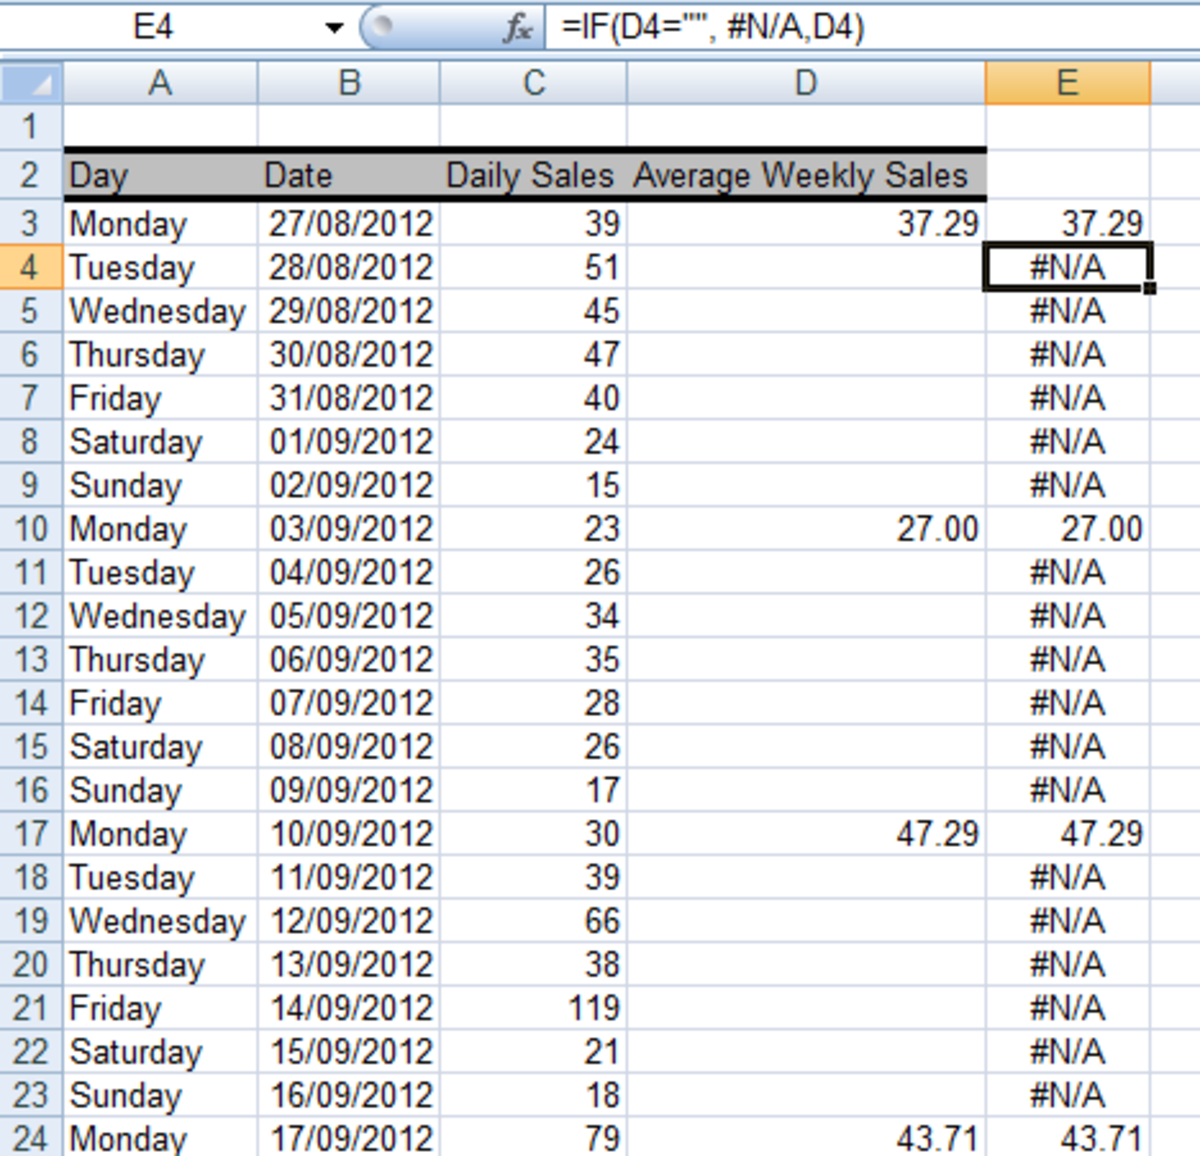 Ediblewildsus  Winning How To Get Excel  And  To Ignore Empty Cells In A Chart Or  With Exciting Using The If Function In A Formula To Convert Empty Cells To Na With Lovely Export Table To Excel Also Project Timeline In Excel In Addition Importing Pdf Into Excel And Xor Excel As Well As Excel Formula For Duplicates Additionally How To Calculate Difference Between Two Dates In Excel From Turbofuturecom With Ediblewildsus  Exciting How To Get Excel  And  To Ignore Empty Cells In A Chart Or  With Lovely Using The If Function In A Formula To Convert Empty Cells To Na And Winning Export Table To Excel Also Project Timeline In Excel In Addition Importing Pdf Into Excel From Turbofuturecom